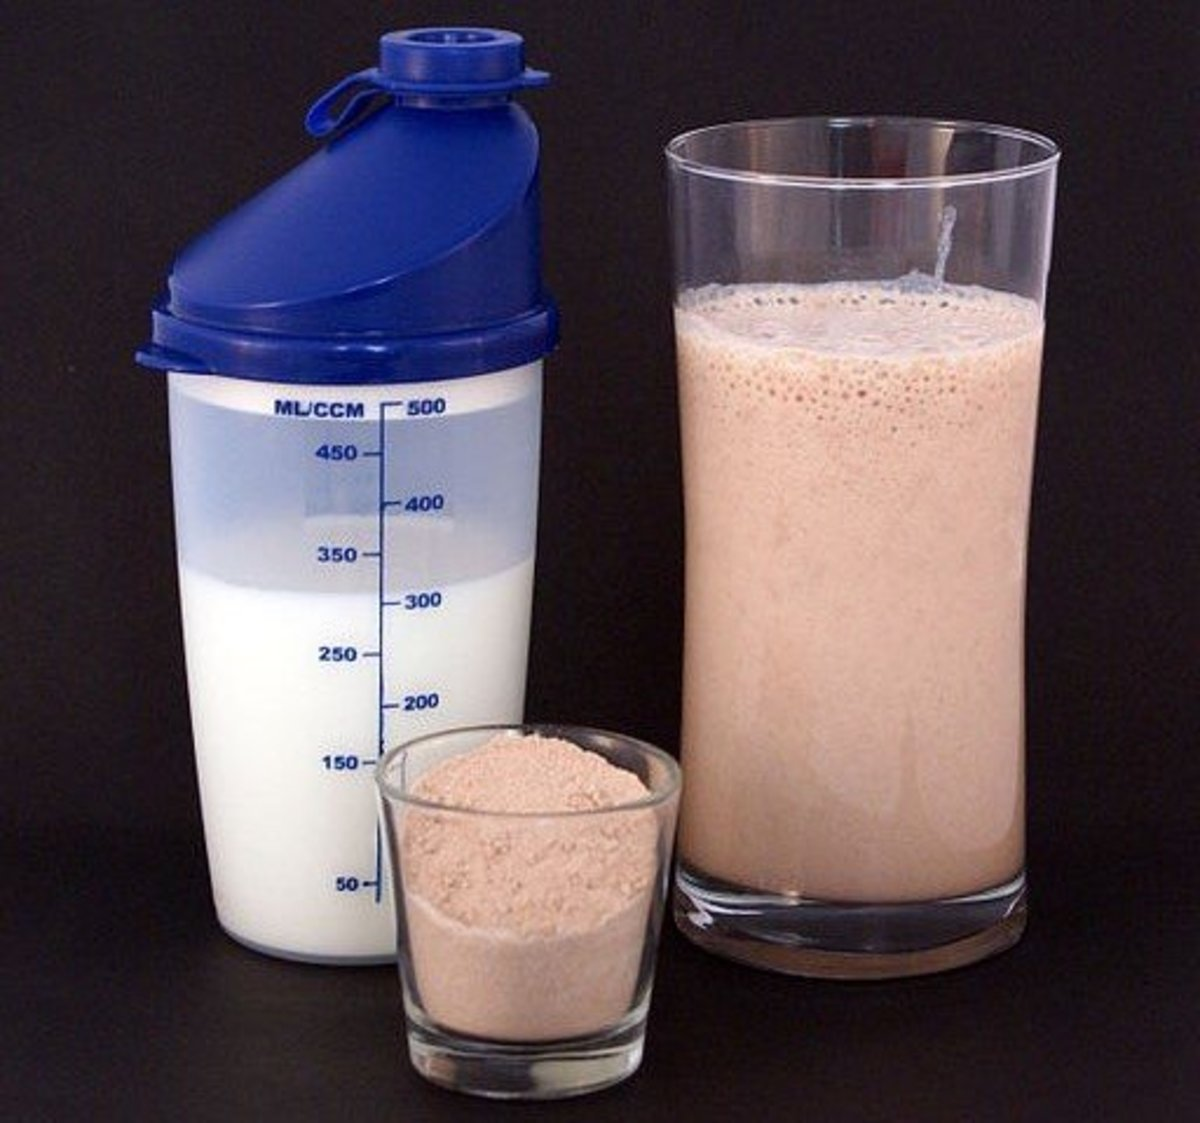 Whey protein can help you build muscle, increase strength, and improve your health too.